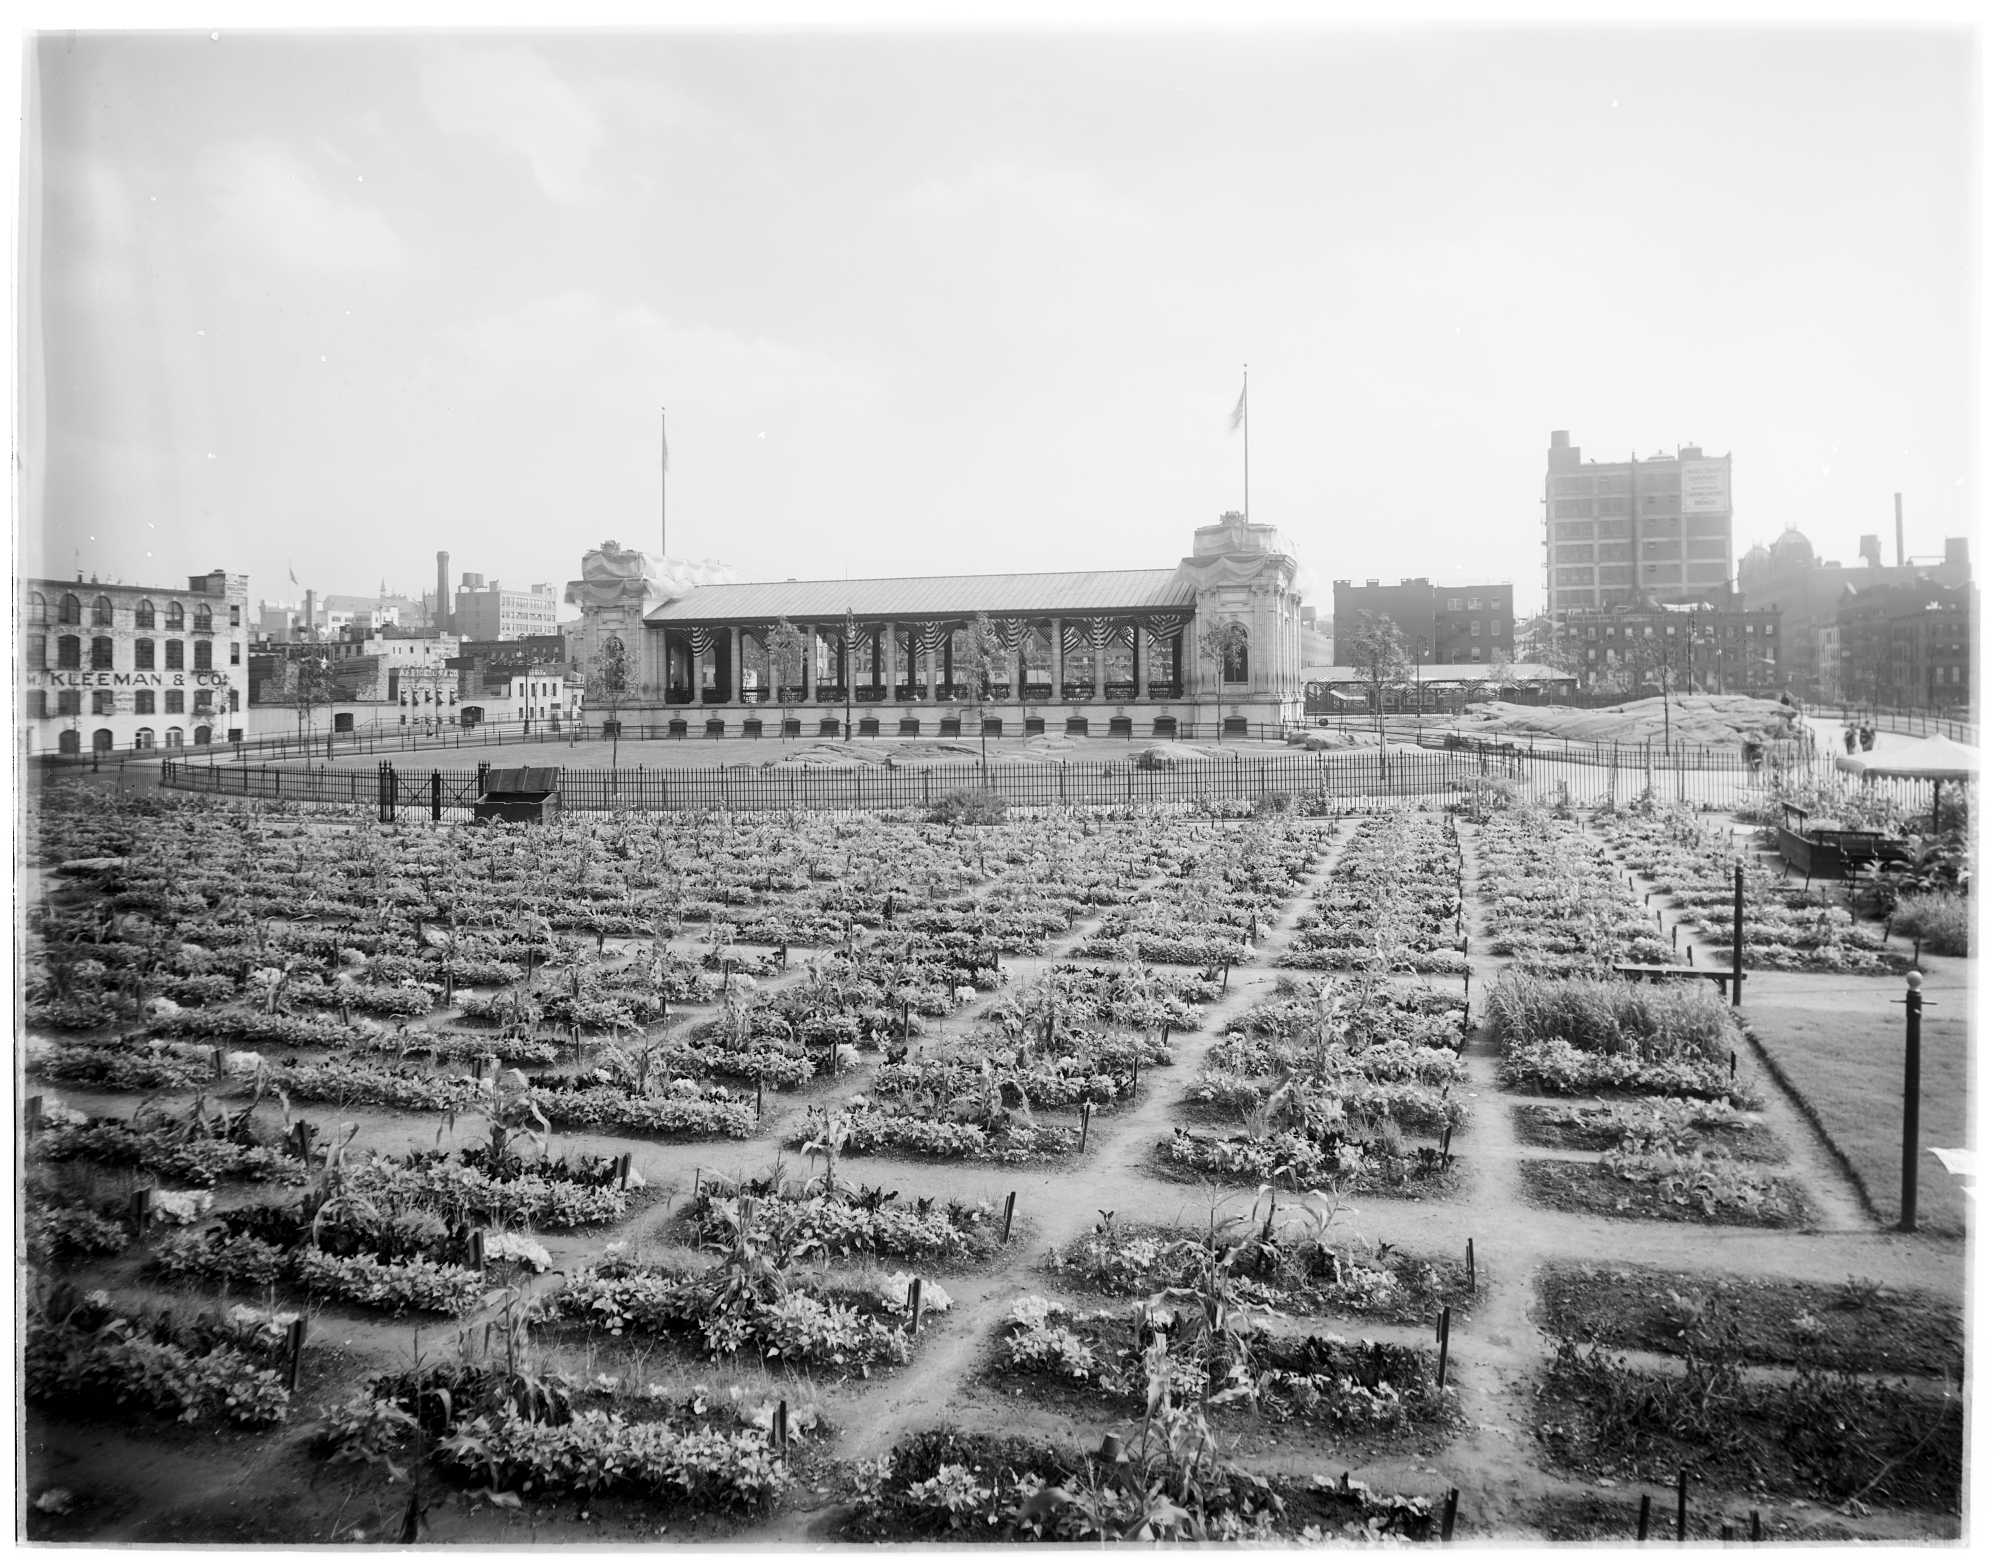 Black and white landscape of garden plots. Buildings on the horizon.